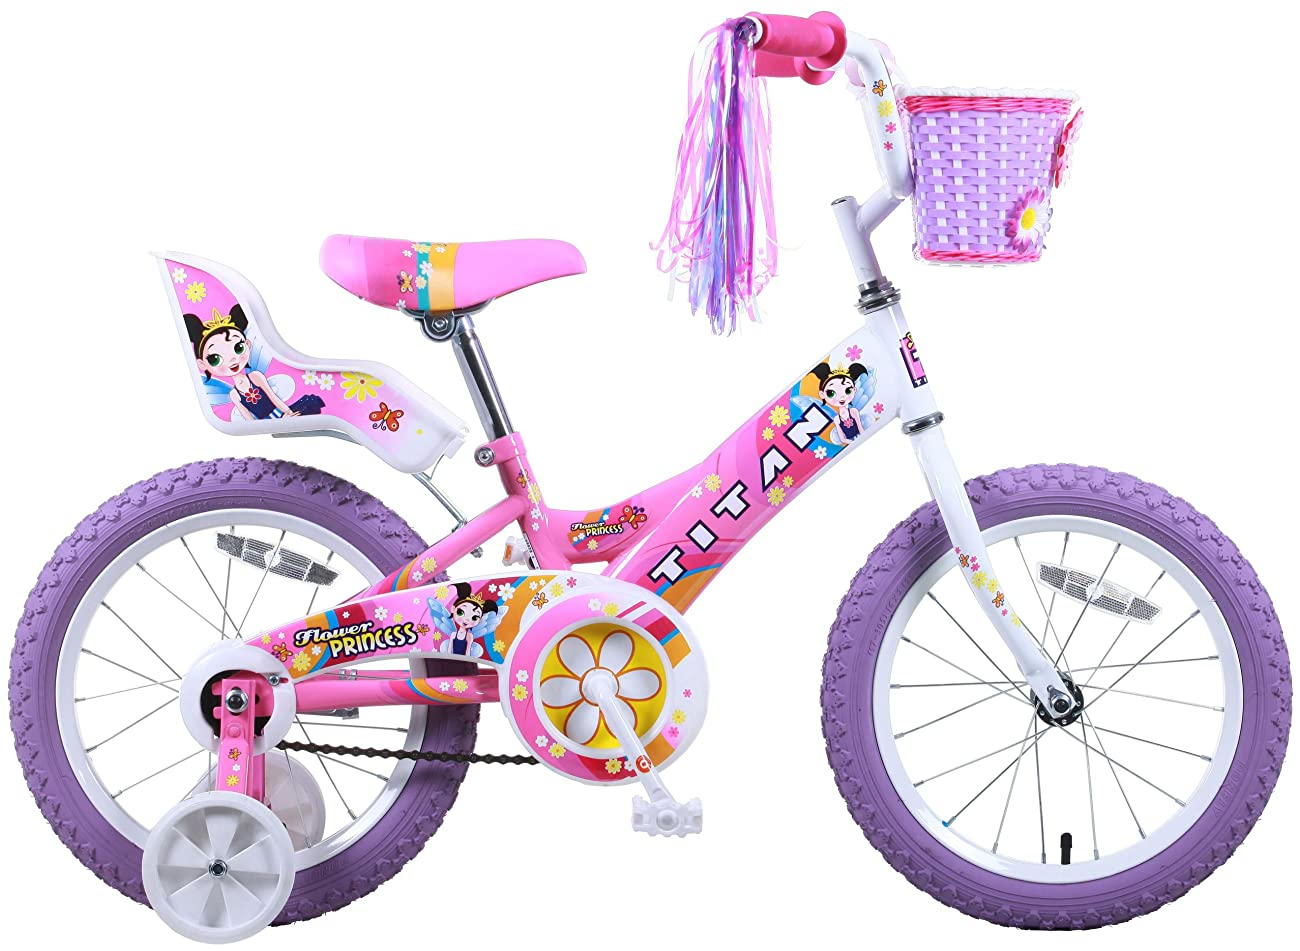 Titan Girl's Flower Princess BMX Bike, Pink, 16-Inch 1